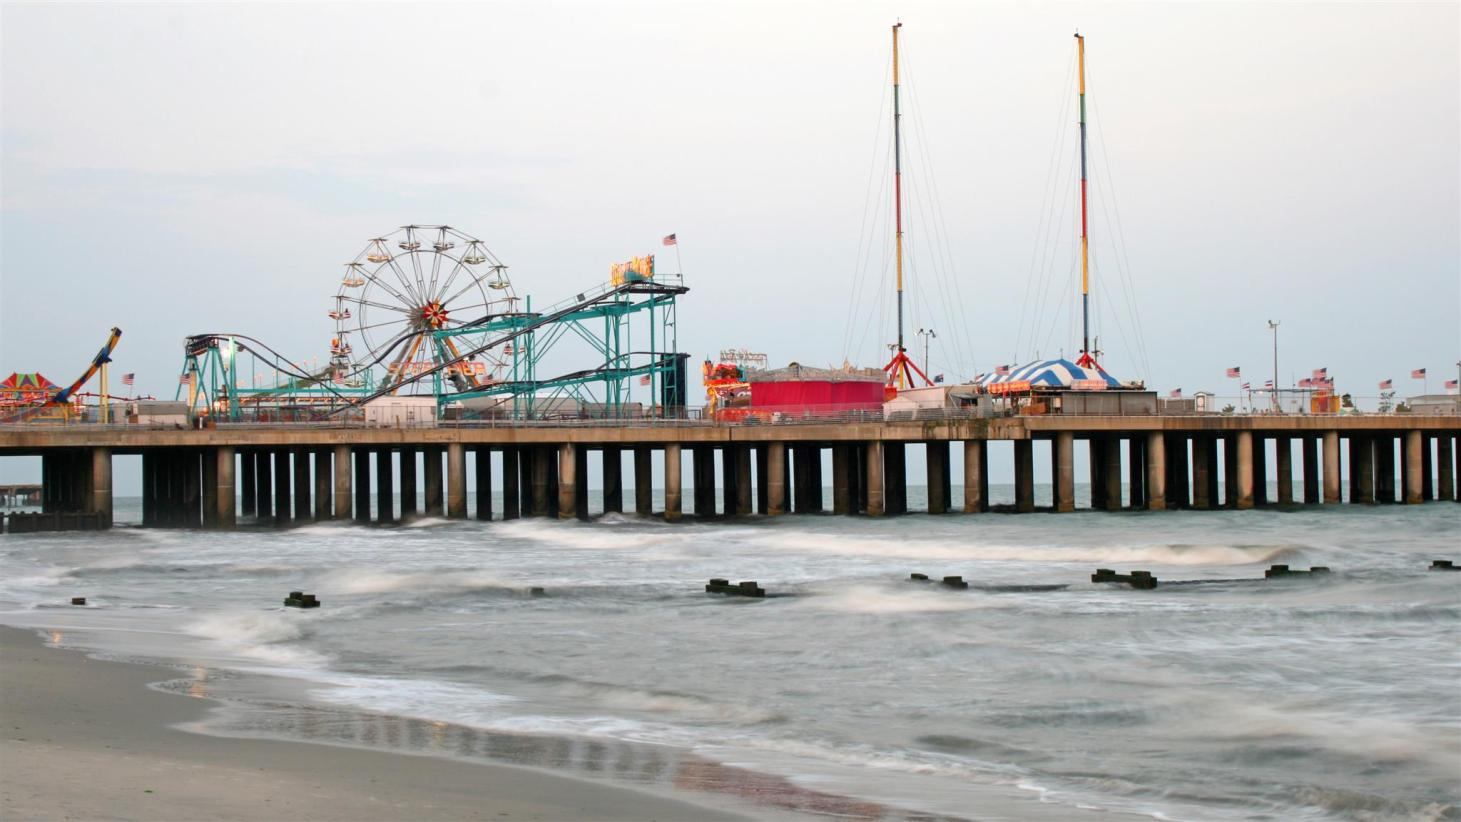 10 Best Atlantic City (NJ) Hotels: HD Photos + Reviews of Hotels in